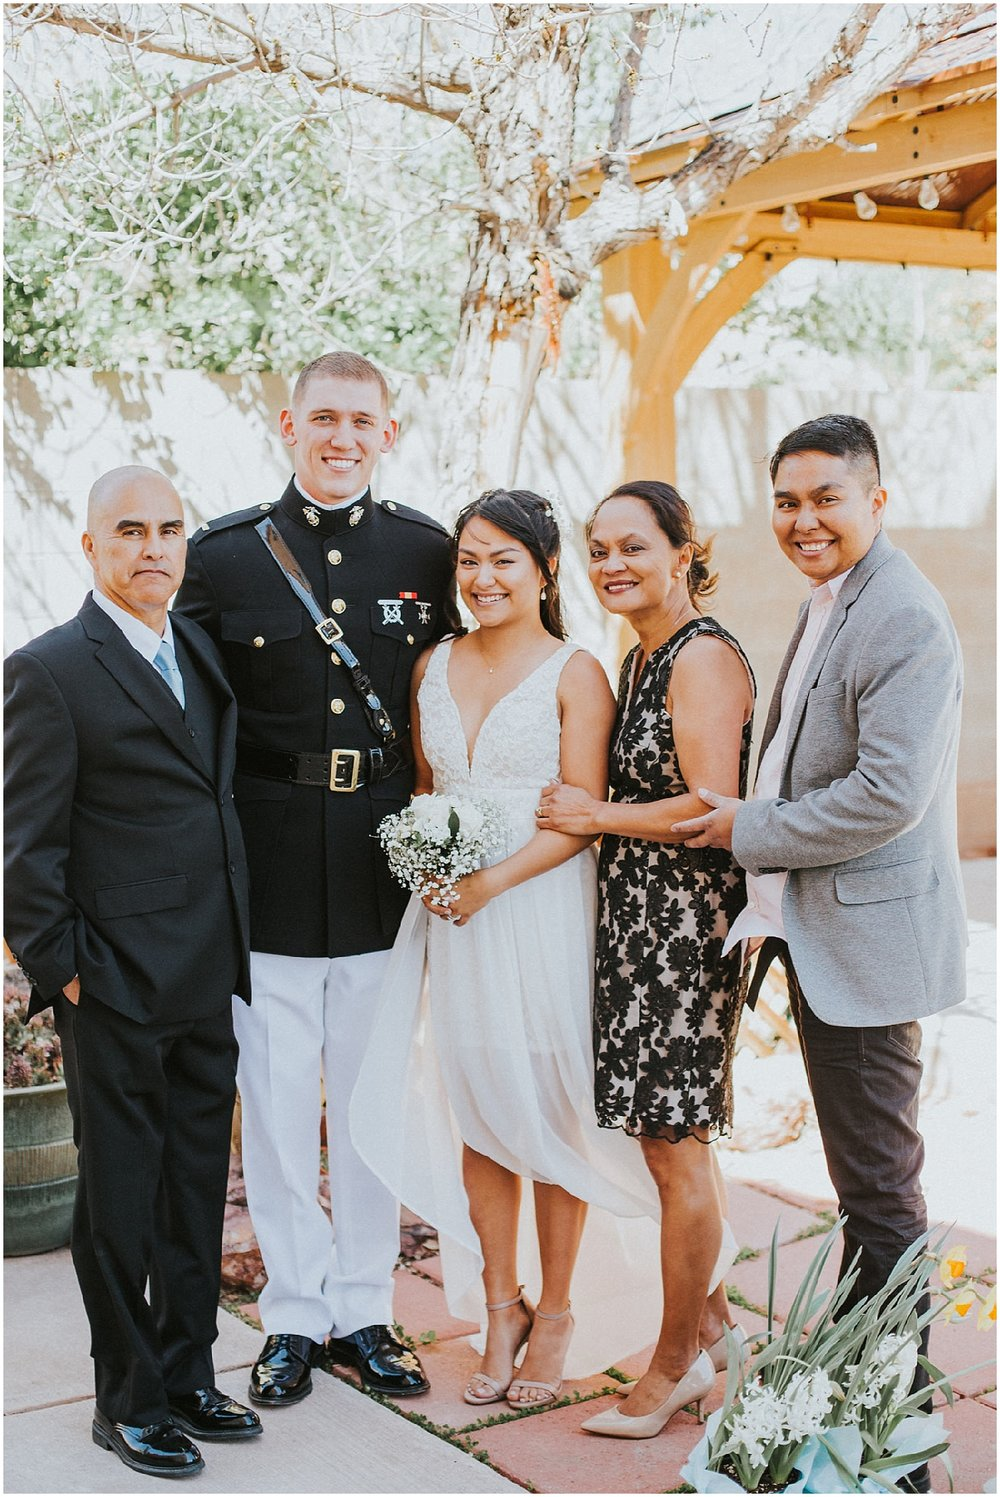 Wedding Inspiration at this Backyard Albuquerque Elopement | Downtown Contemporary Art Studio | Albuquerque, New Mexico | Jasper K Photography